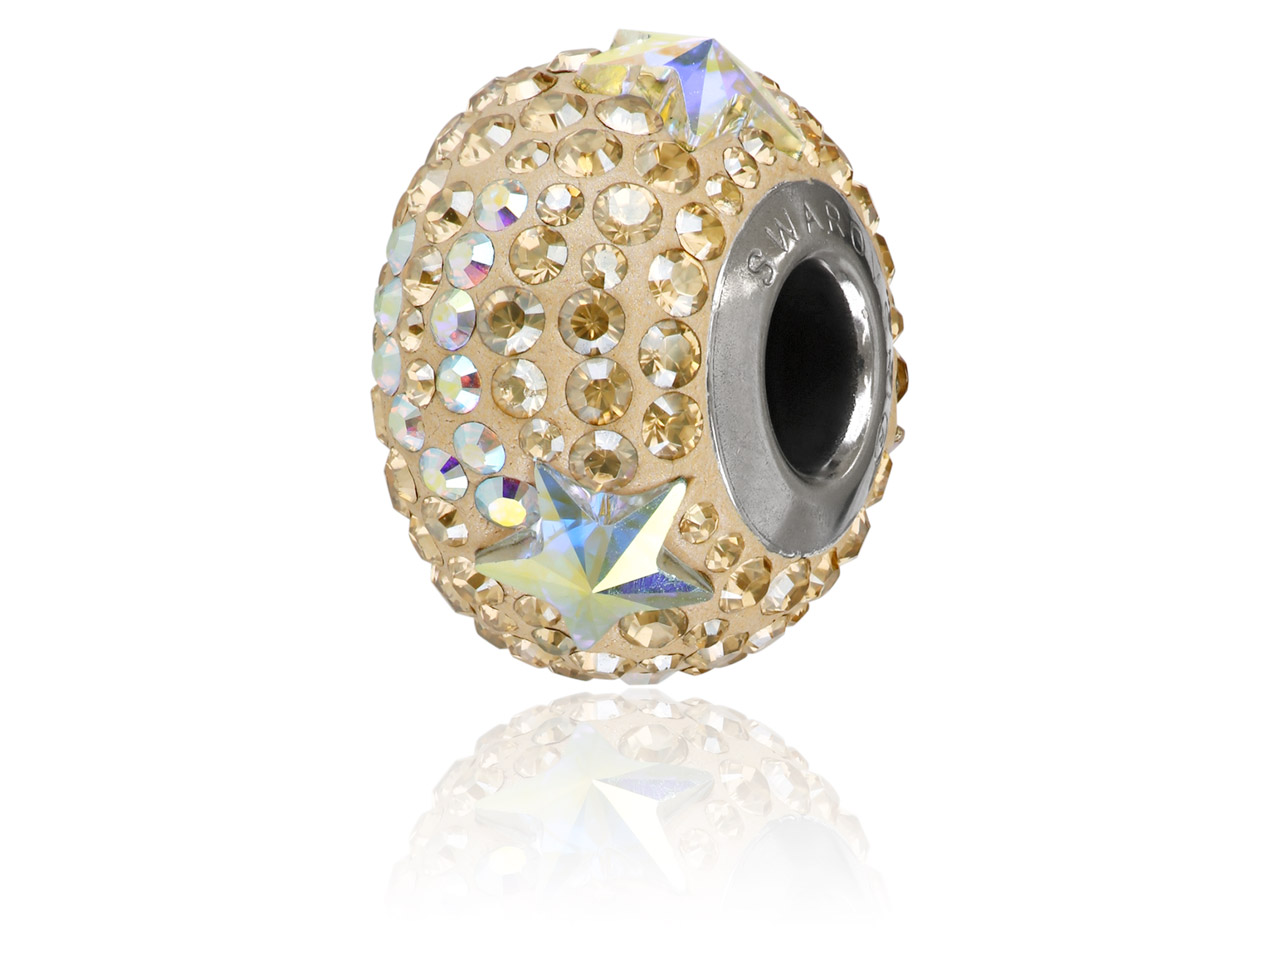 Swarovski Becharmed Pave Shooting  Star Charm Bead, Crystal Golden    Shadow, 14mm, Limited Edition